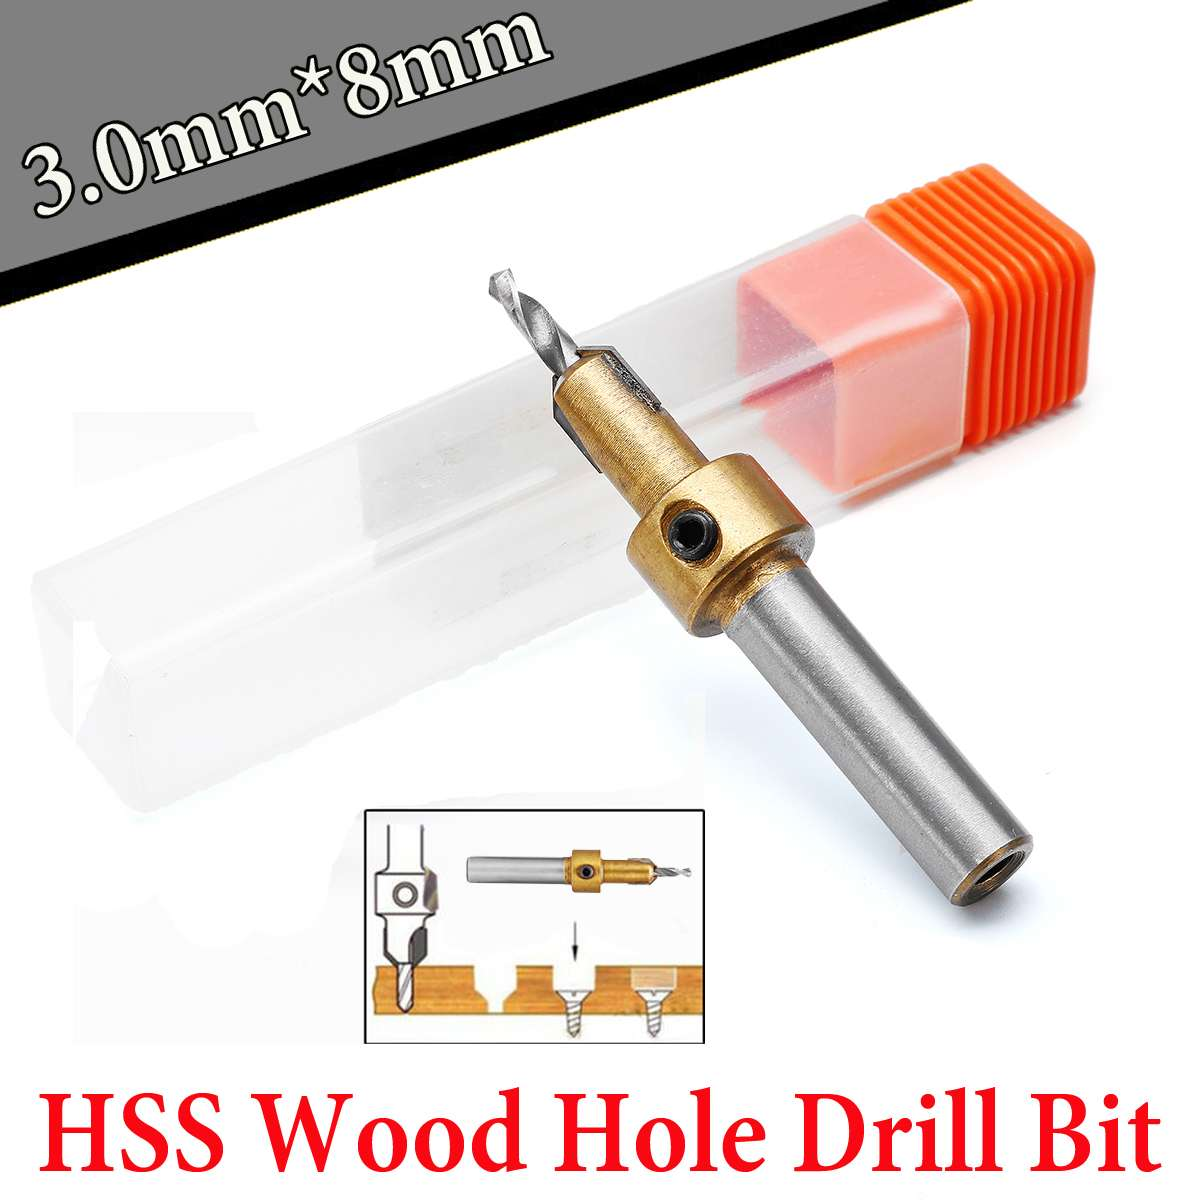 1PC Tiny Hss Wood Hole Drill Bit Timber Wood Working Countersink Drill Bit Kit Screw Cutter 3mm x 8mm Shank For Metal Wood Alloy1PC Tiny Hss Wood Hole Drill Bit Timber Wood Working Countersink Drill Bit Kit Screw Cutter 3mm x 8mm Shank For Metal Wood Alloy